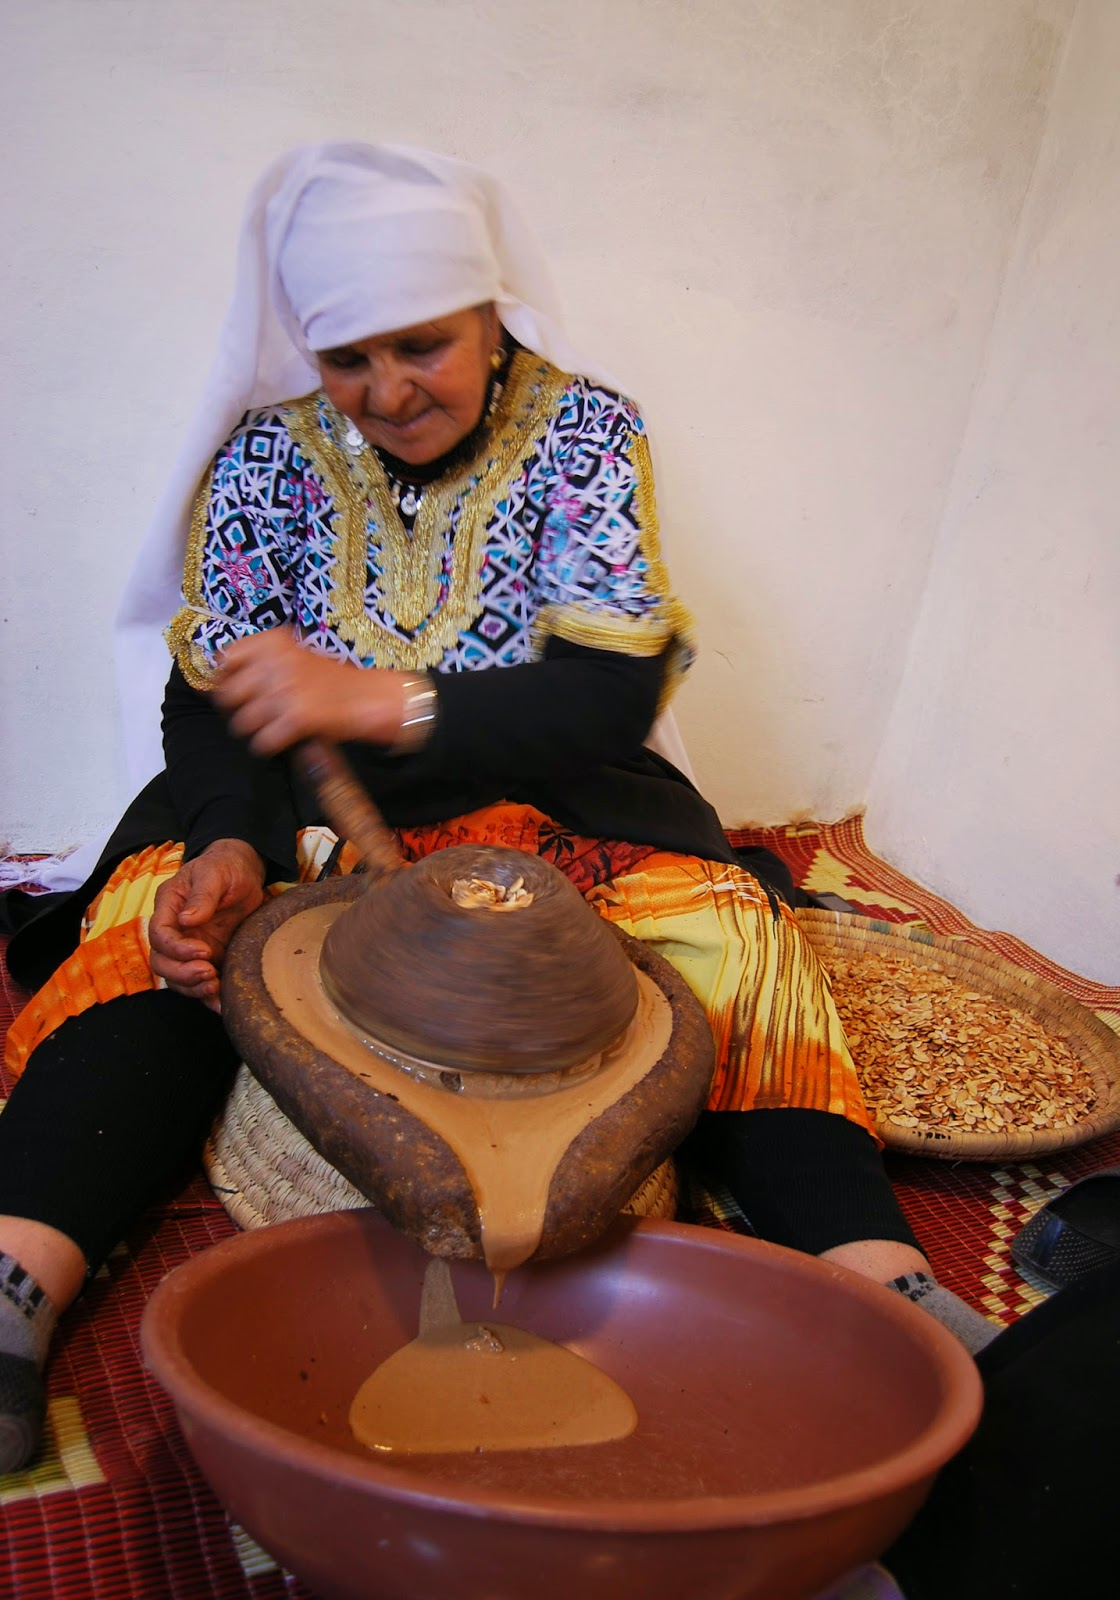 Do you know where does Argan Oil come from? So interesting!